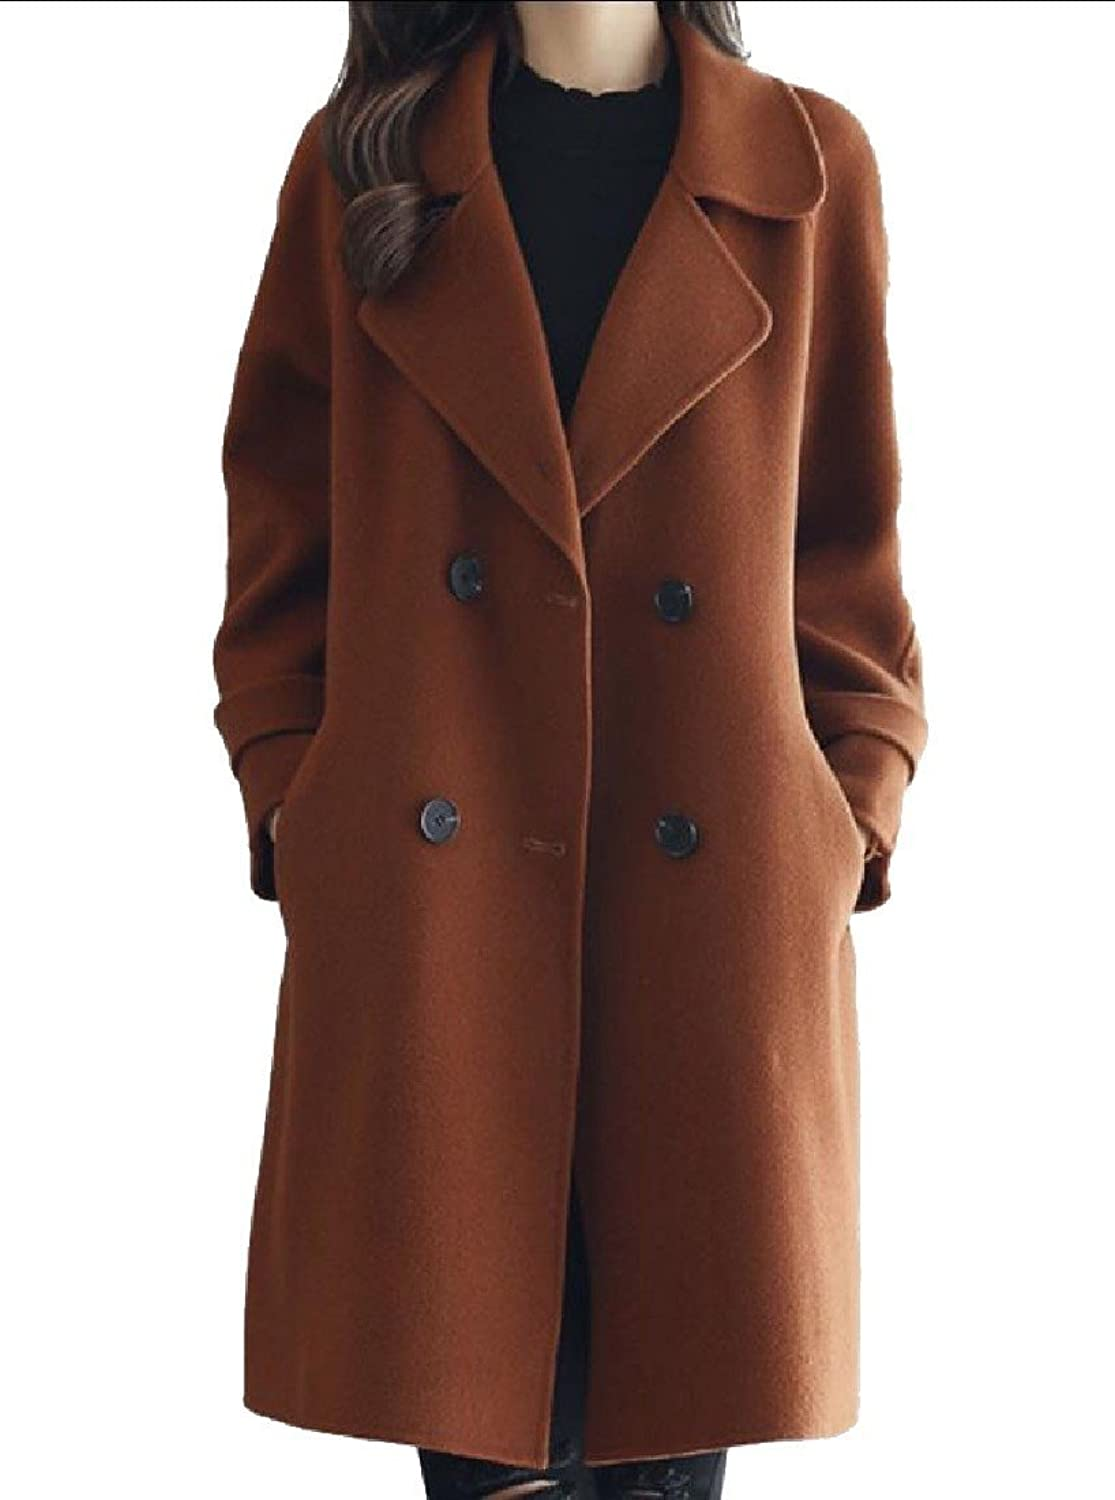 Abetteric Women Doublebreasted Mulit color Stylish Lapel Allmatch Peacoat